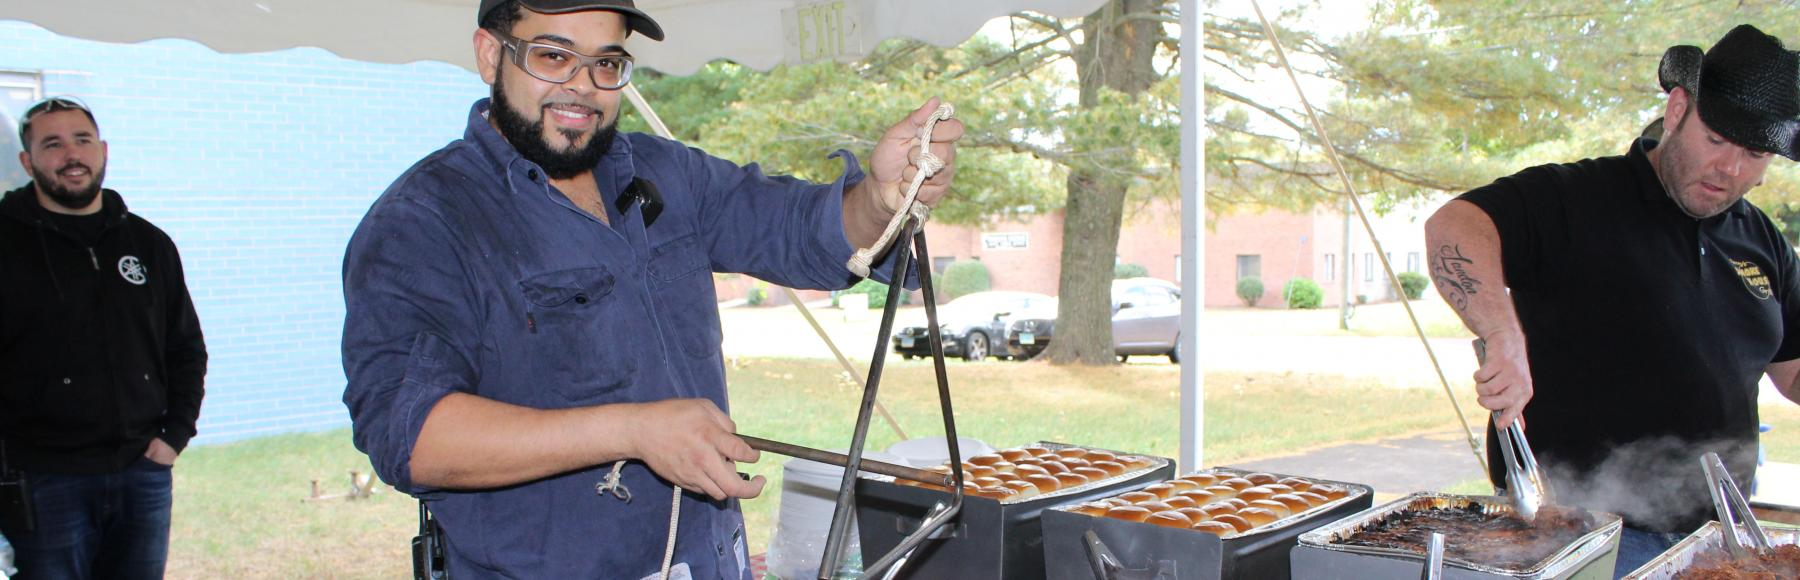 Man with hat, glasses, and beard holding a metal triangle to make noise signifying the start of the meal.  He is standing in front of a buffet of BBQ outside under a tent.  A man in a black shirt and black cowboy hat is serving food.